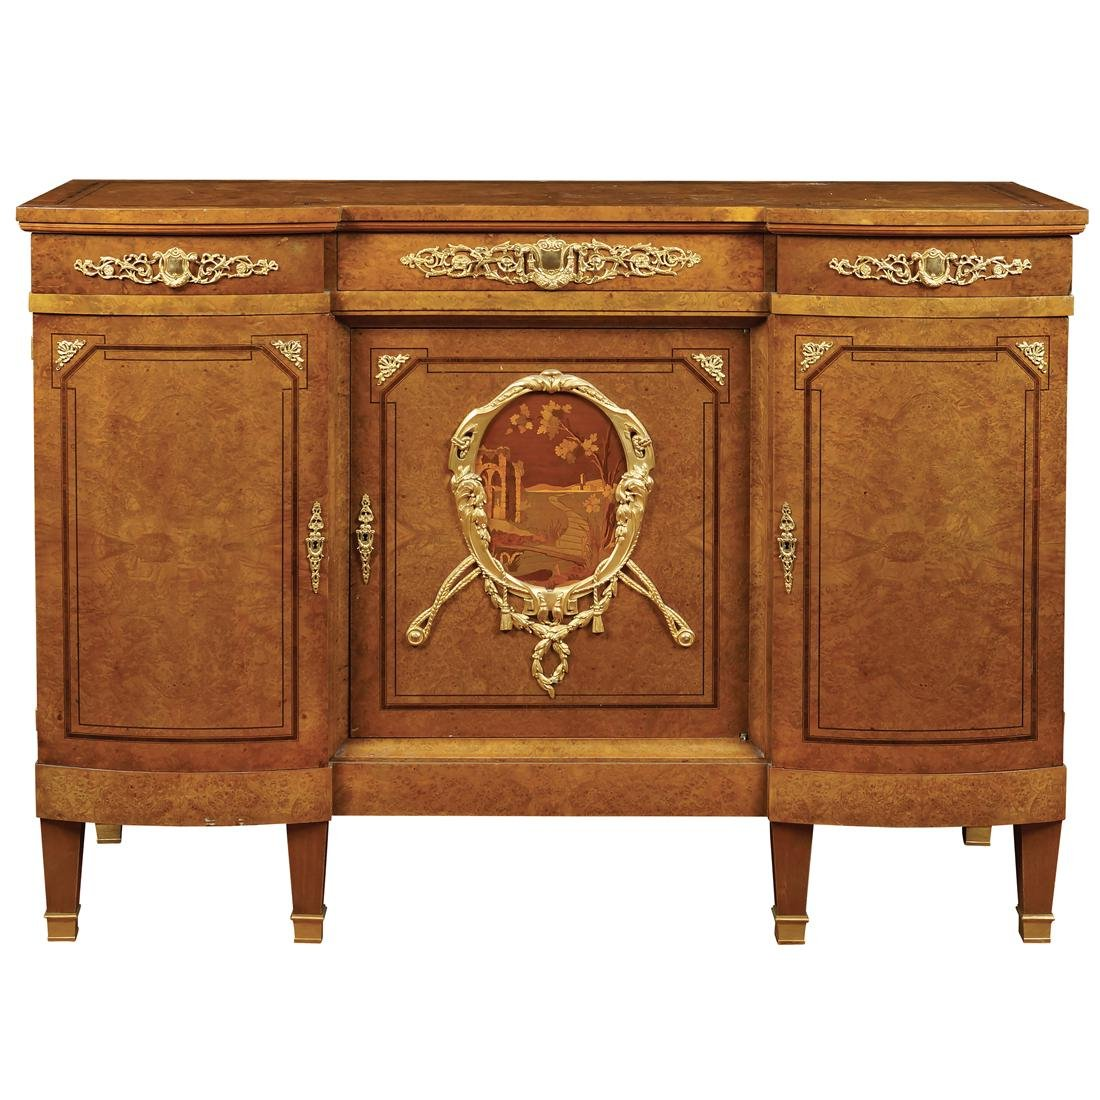 tuia root wood sideboard france late 19th early 20th